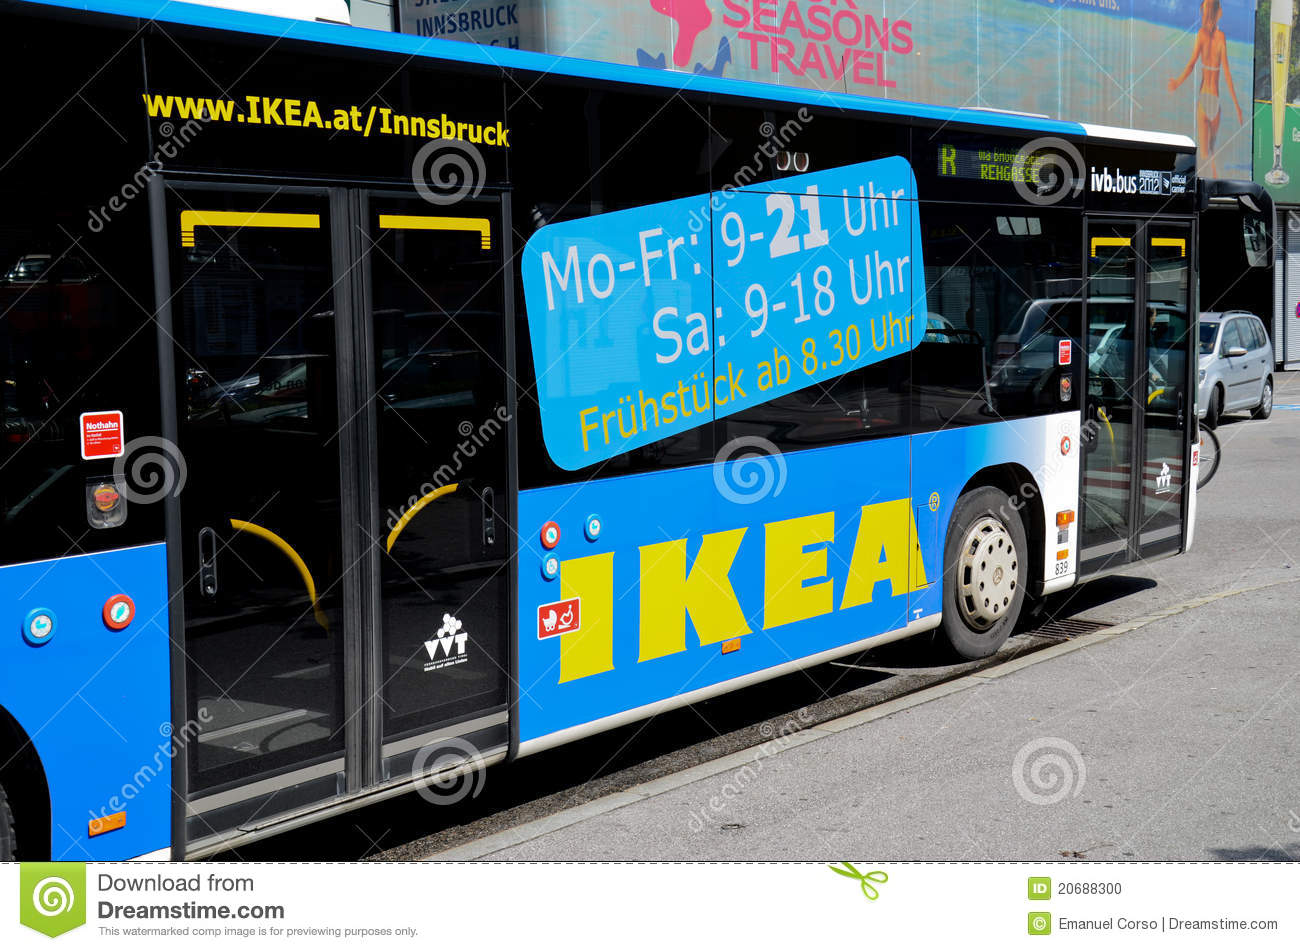 Ikea Stock Photos - Royalty Free Pictures